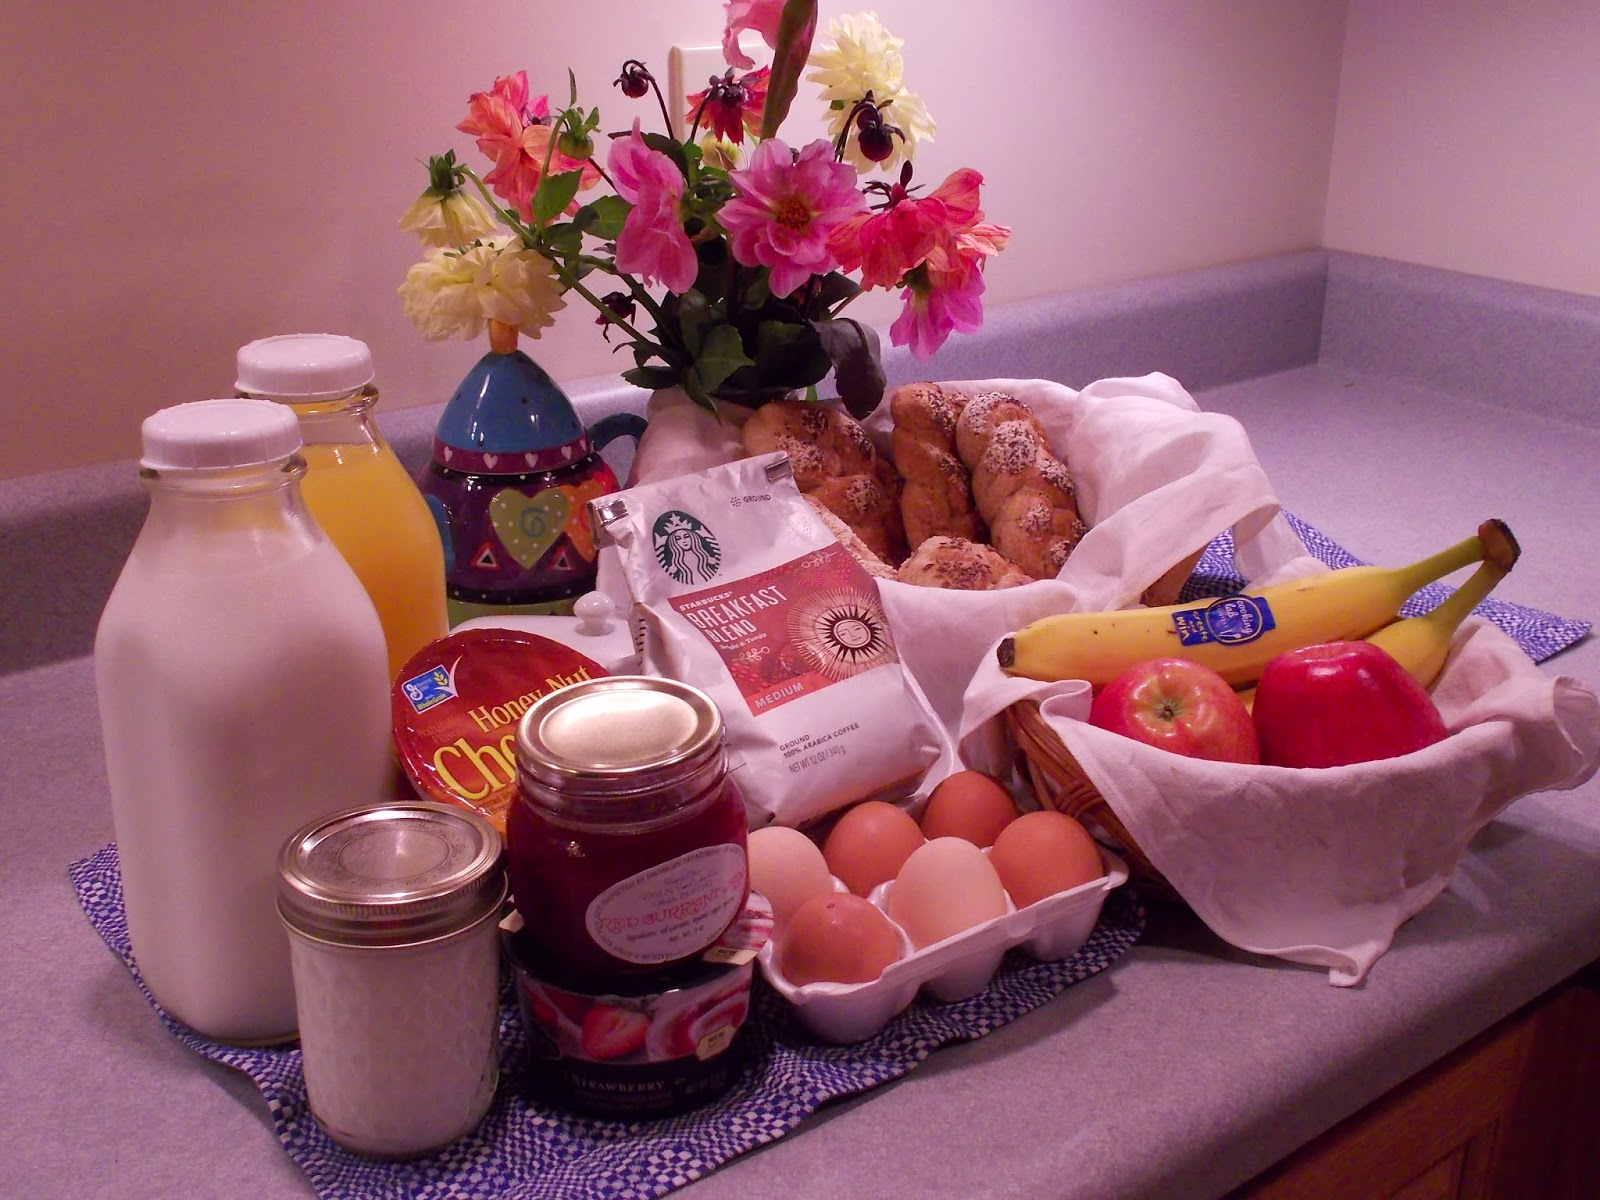 Enjoy a delicious breakfast at the Hutch, a bed and breakfast in Hillsdale, Michigan.